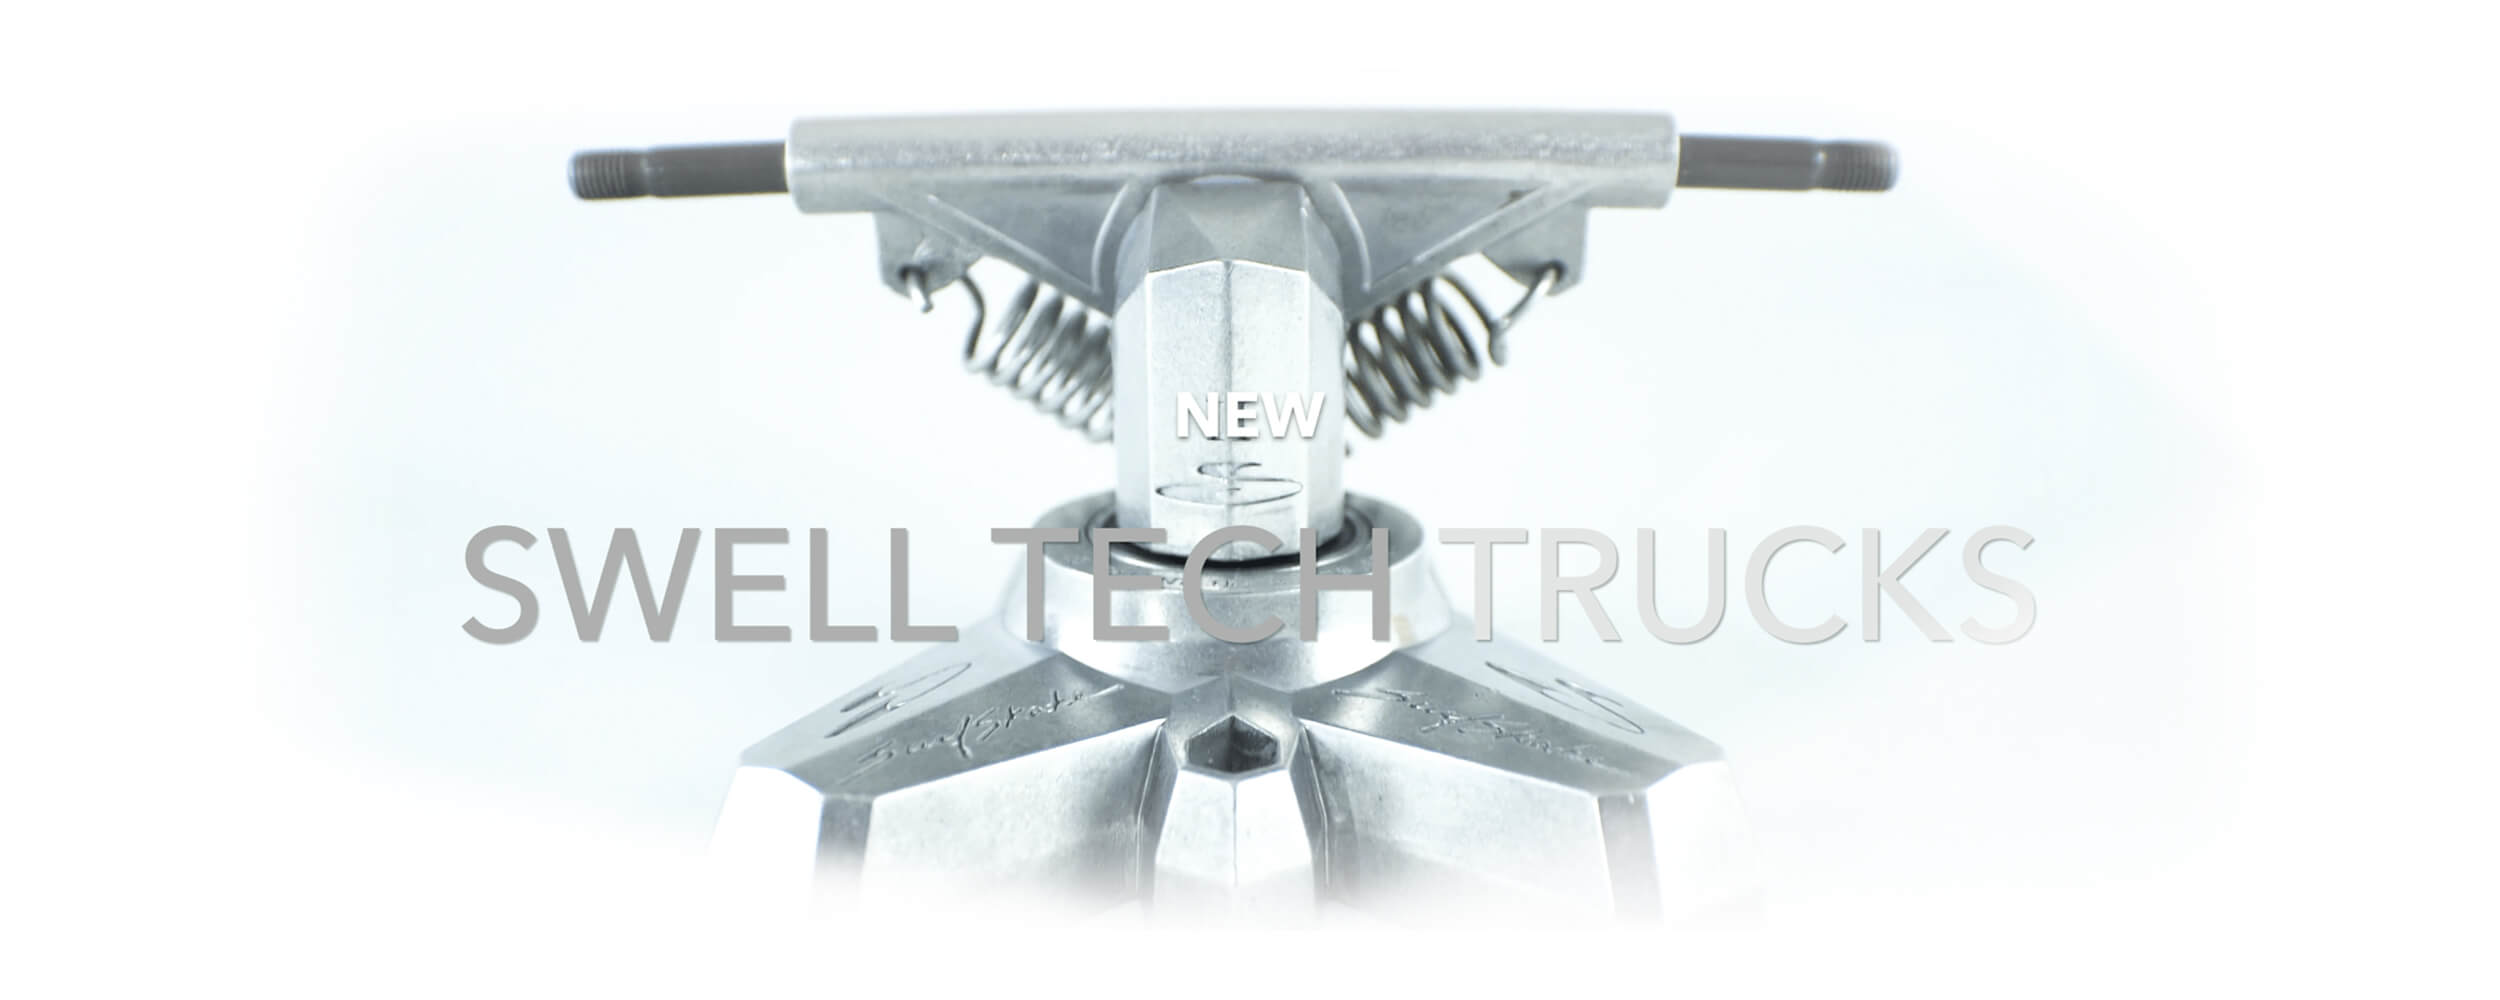 surfskate eje 360 swell tech truck